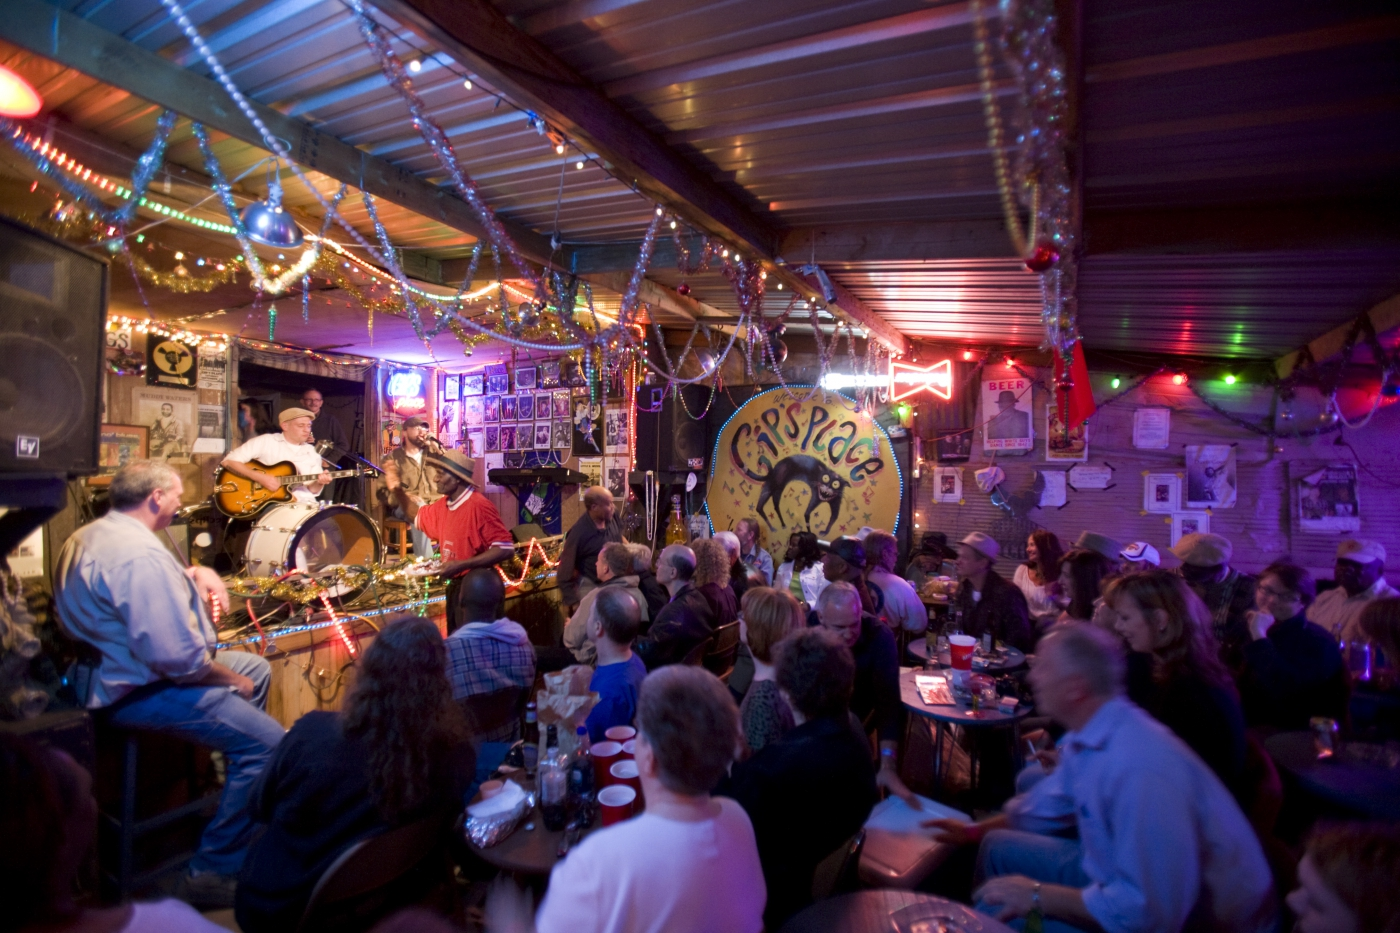 Hear live music every Saturday night at Gip's Place, an authentic backyard juke joint in Bessemer, close to Birmingham.